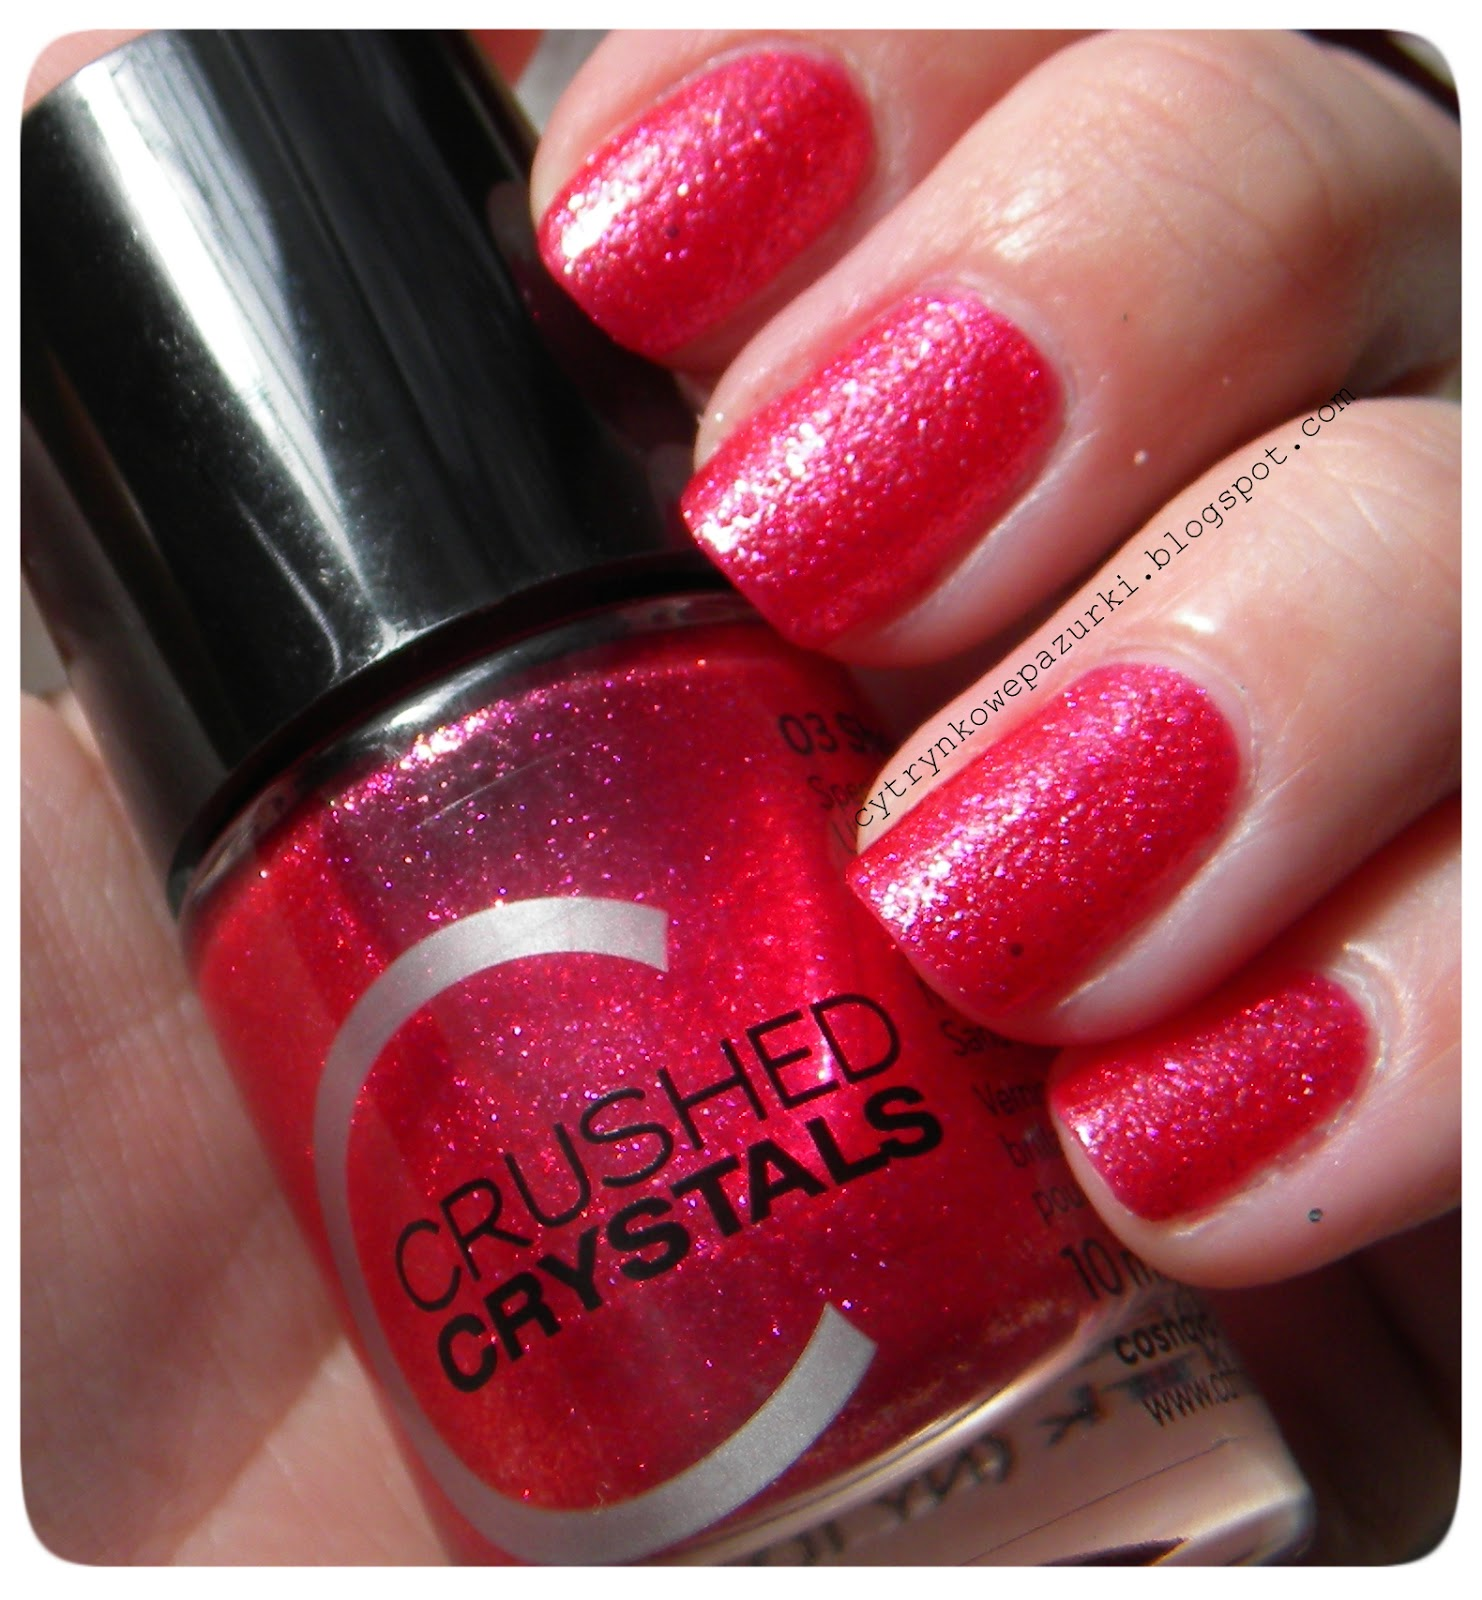 Catrice Crushed Crystals 03 Shooting Star